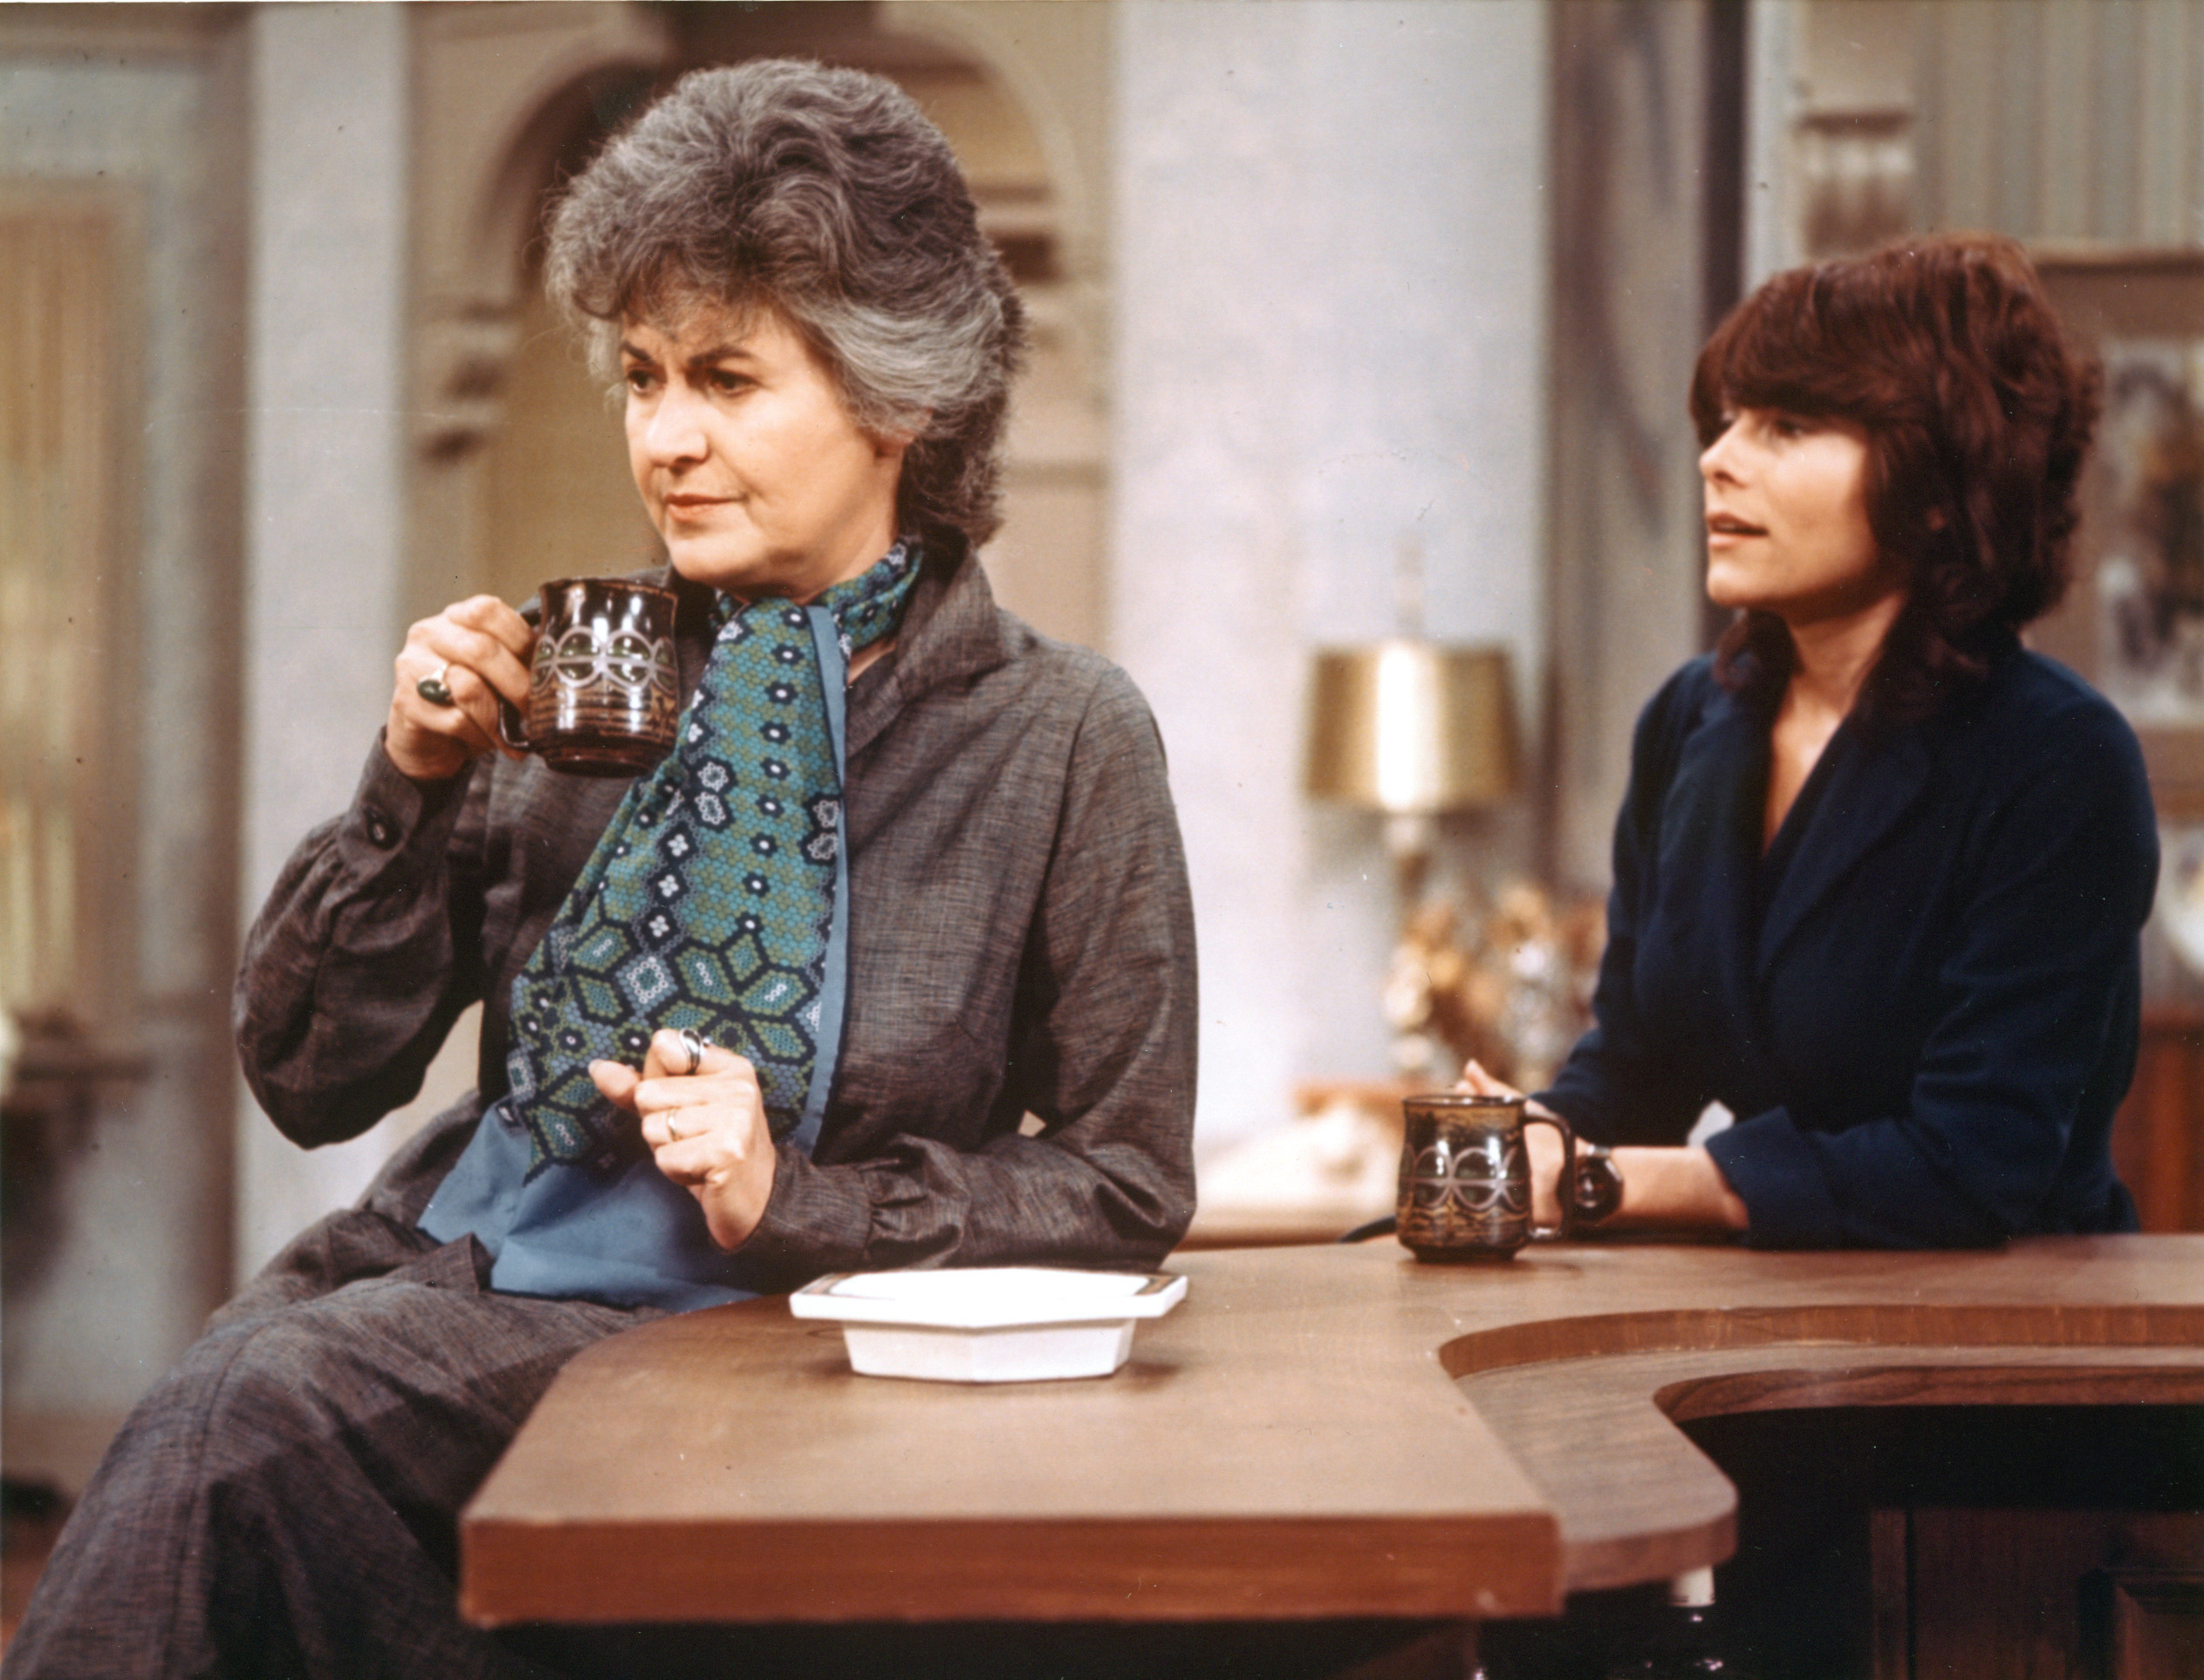 Cast members Beatrice Arthur (as Maude Findlay) and Adrienne Barbeau (as Carol) in  Maude  in 1975.